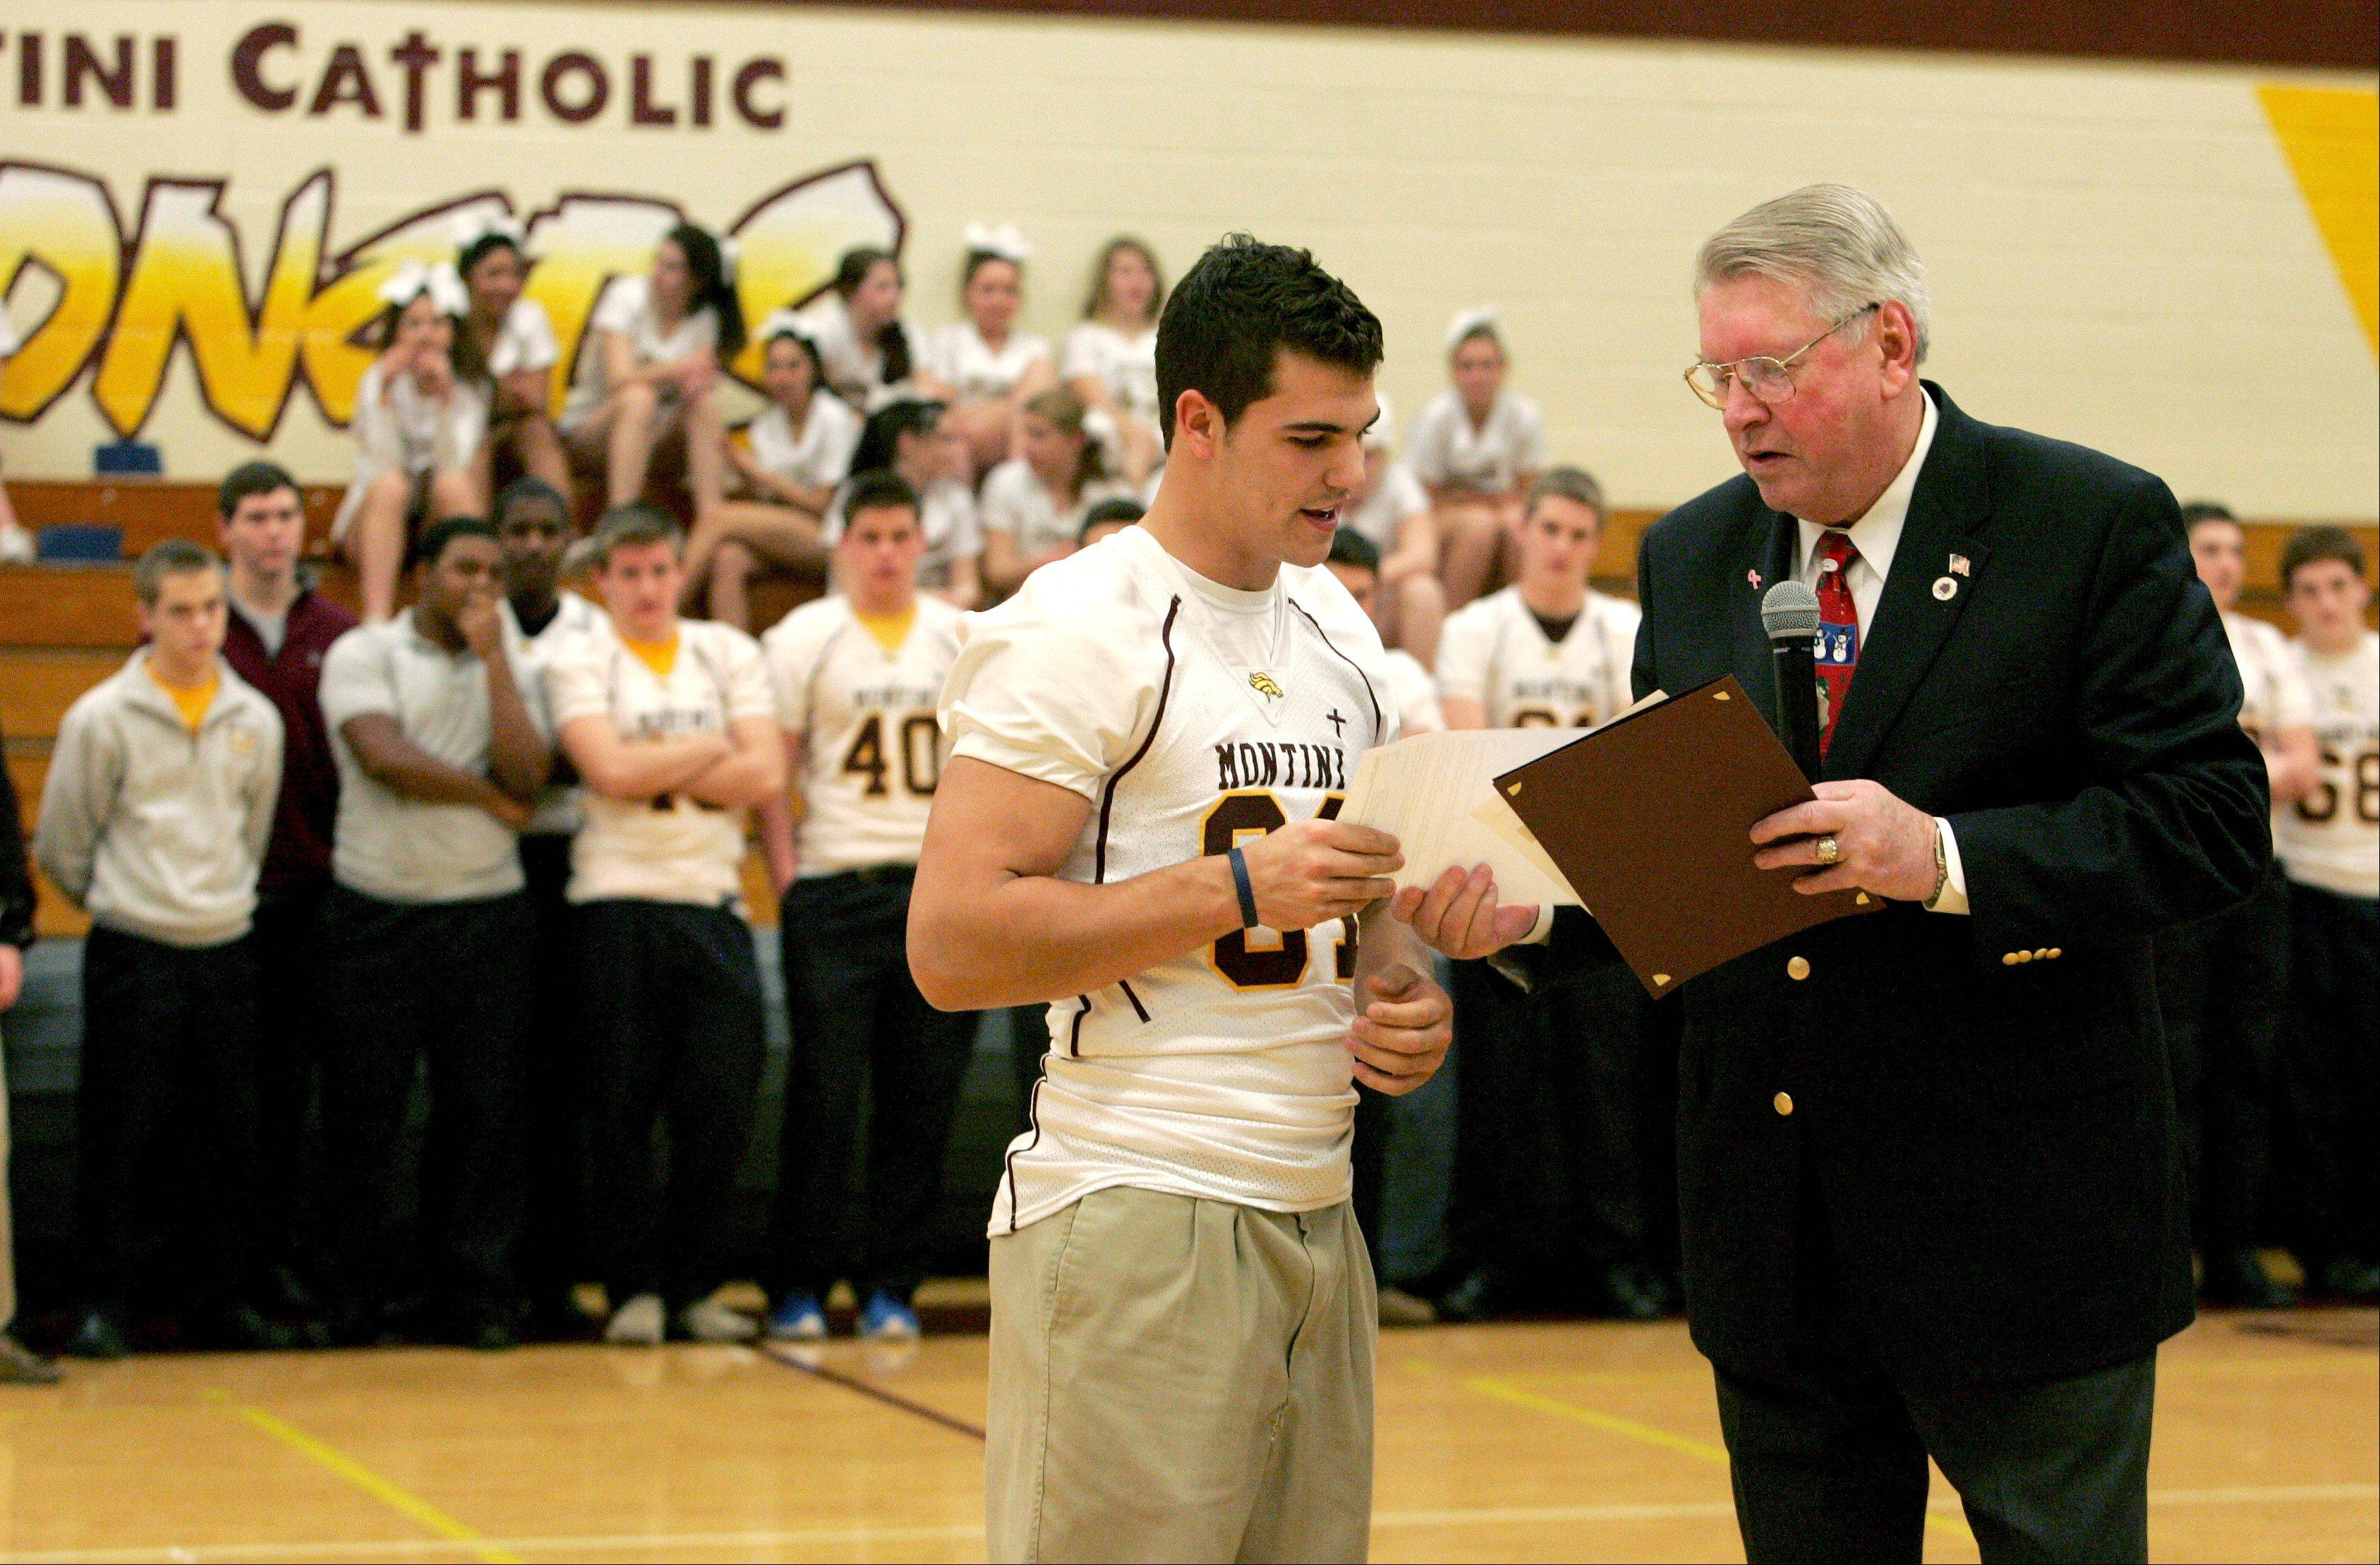 Lombard Village President Bill Mueller hands Montini senior wide receiver Jordan Westerkamp a copy of an email from Glen Ellyn Village President Mark Pfefferman praising Westerkamp and the Montini football team during a pep rally Friday celebrating the team's third consecutive Class 5A state championship.